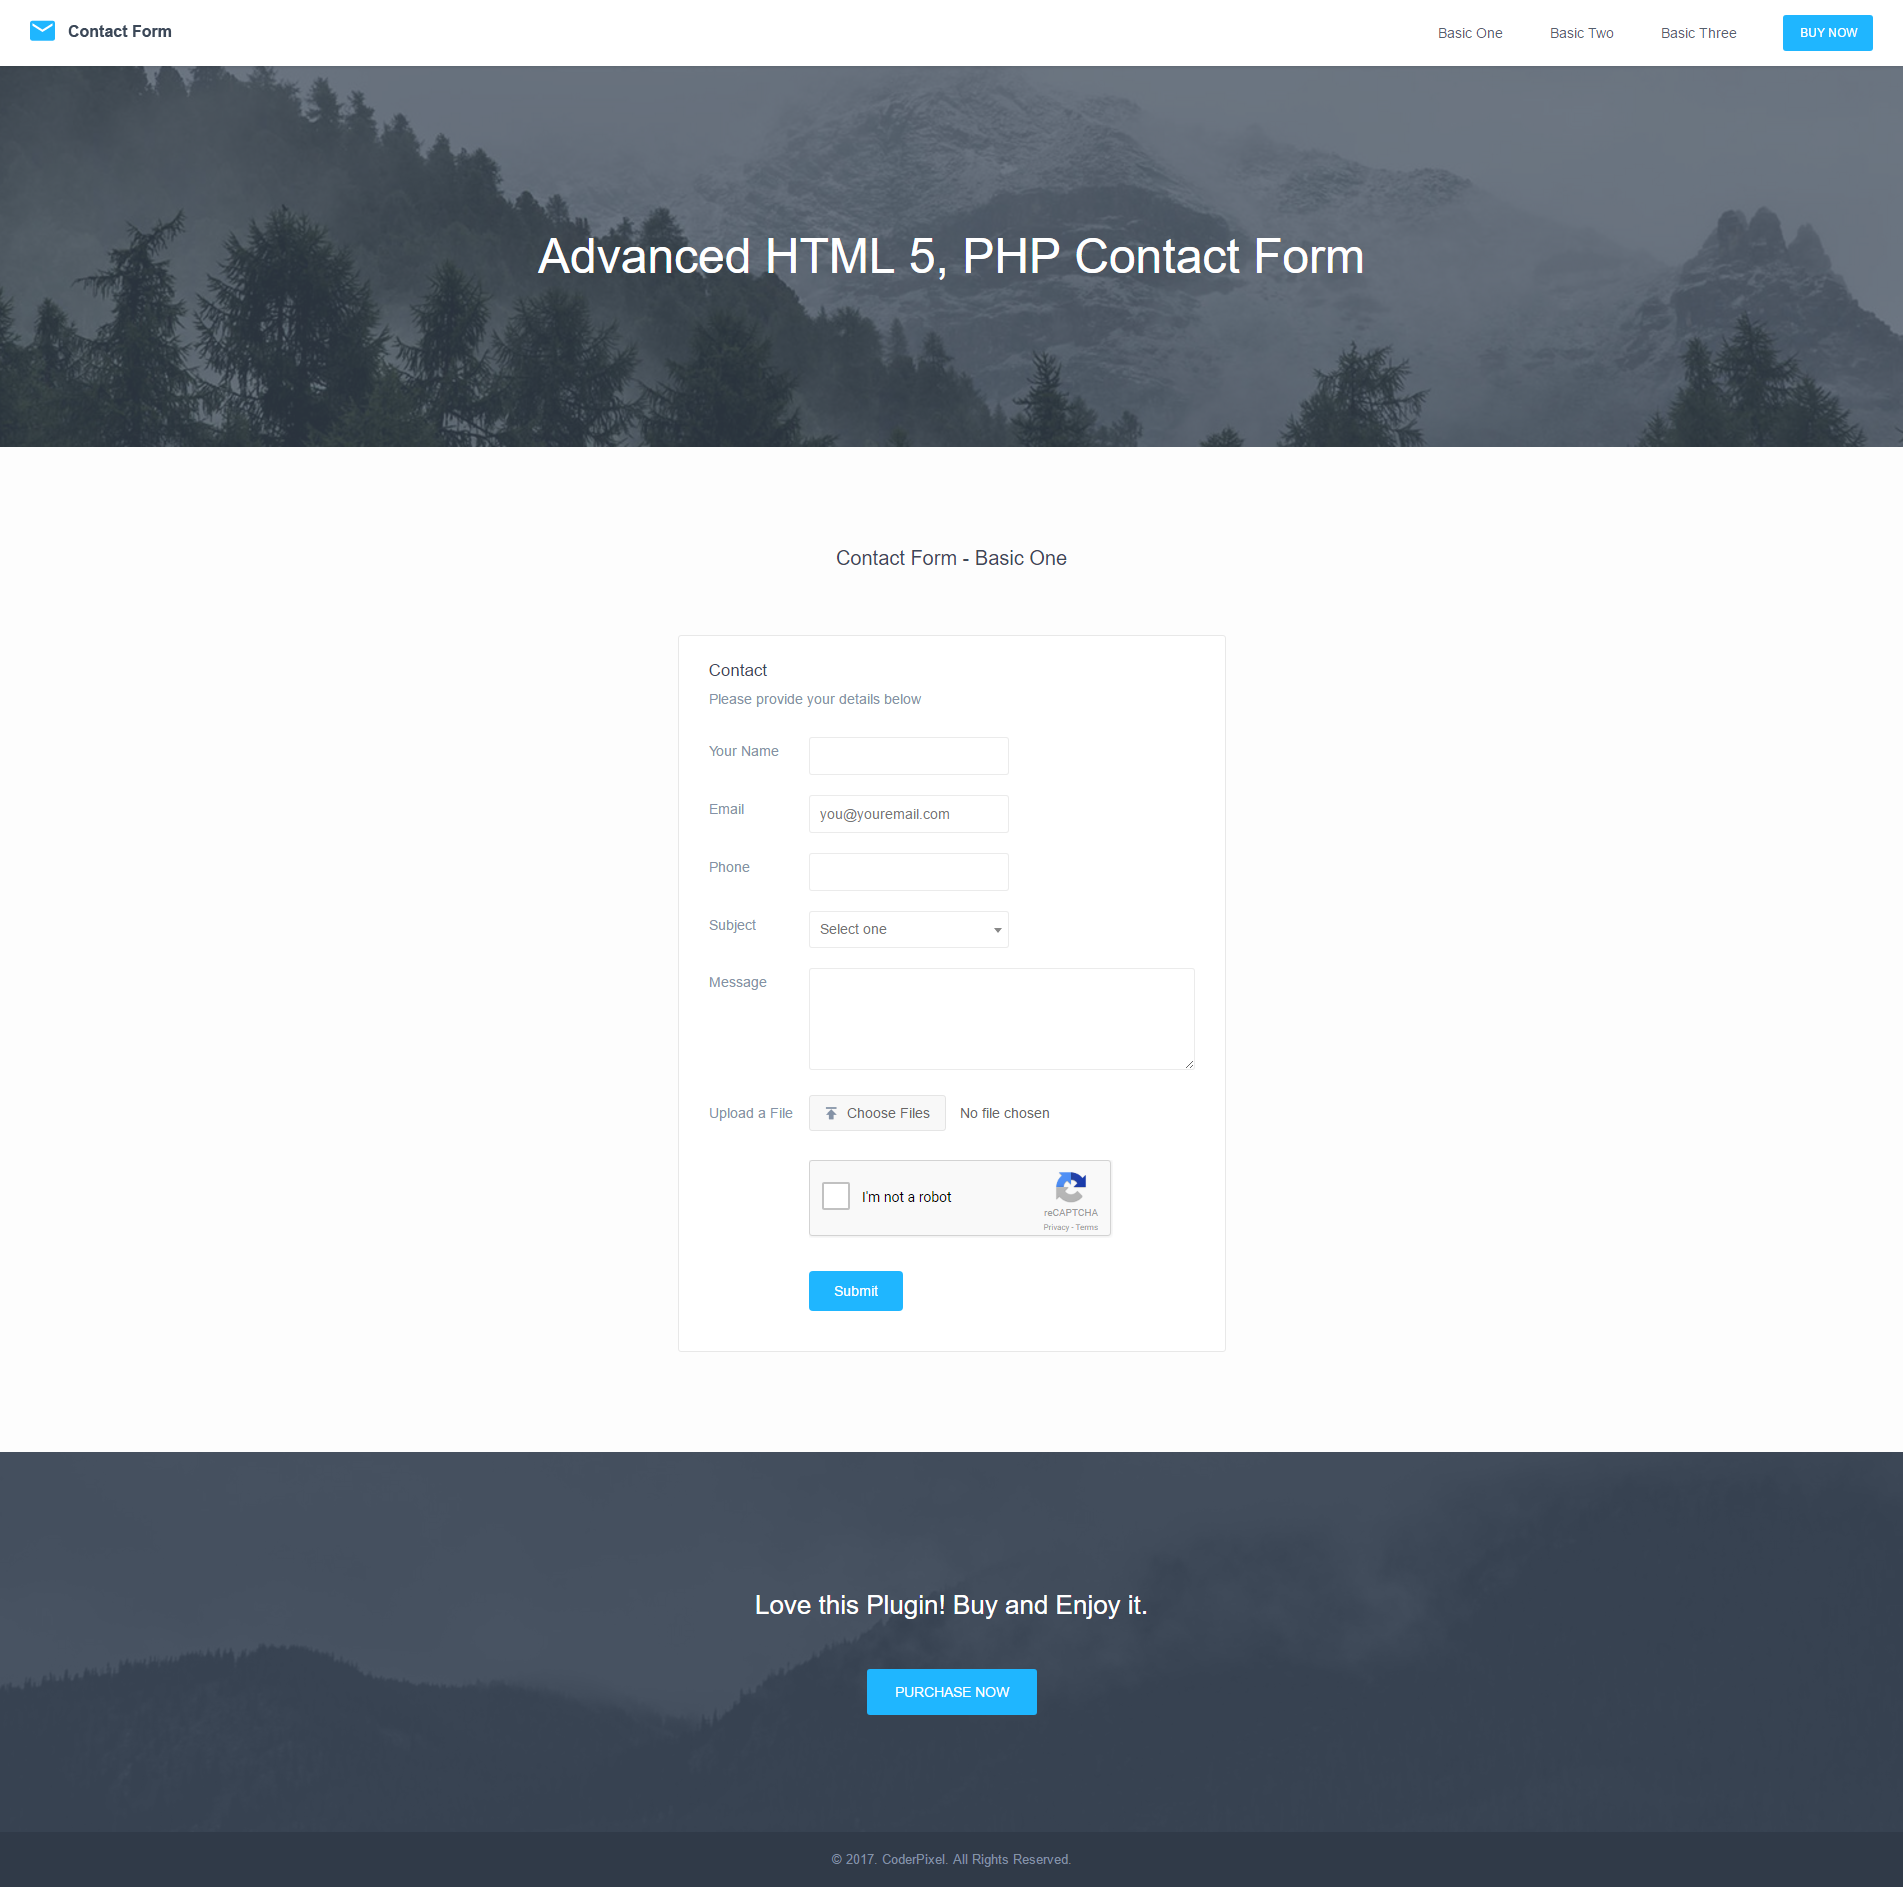 Advanced PHP, HTML5 & AJAX Contact Form